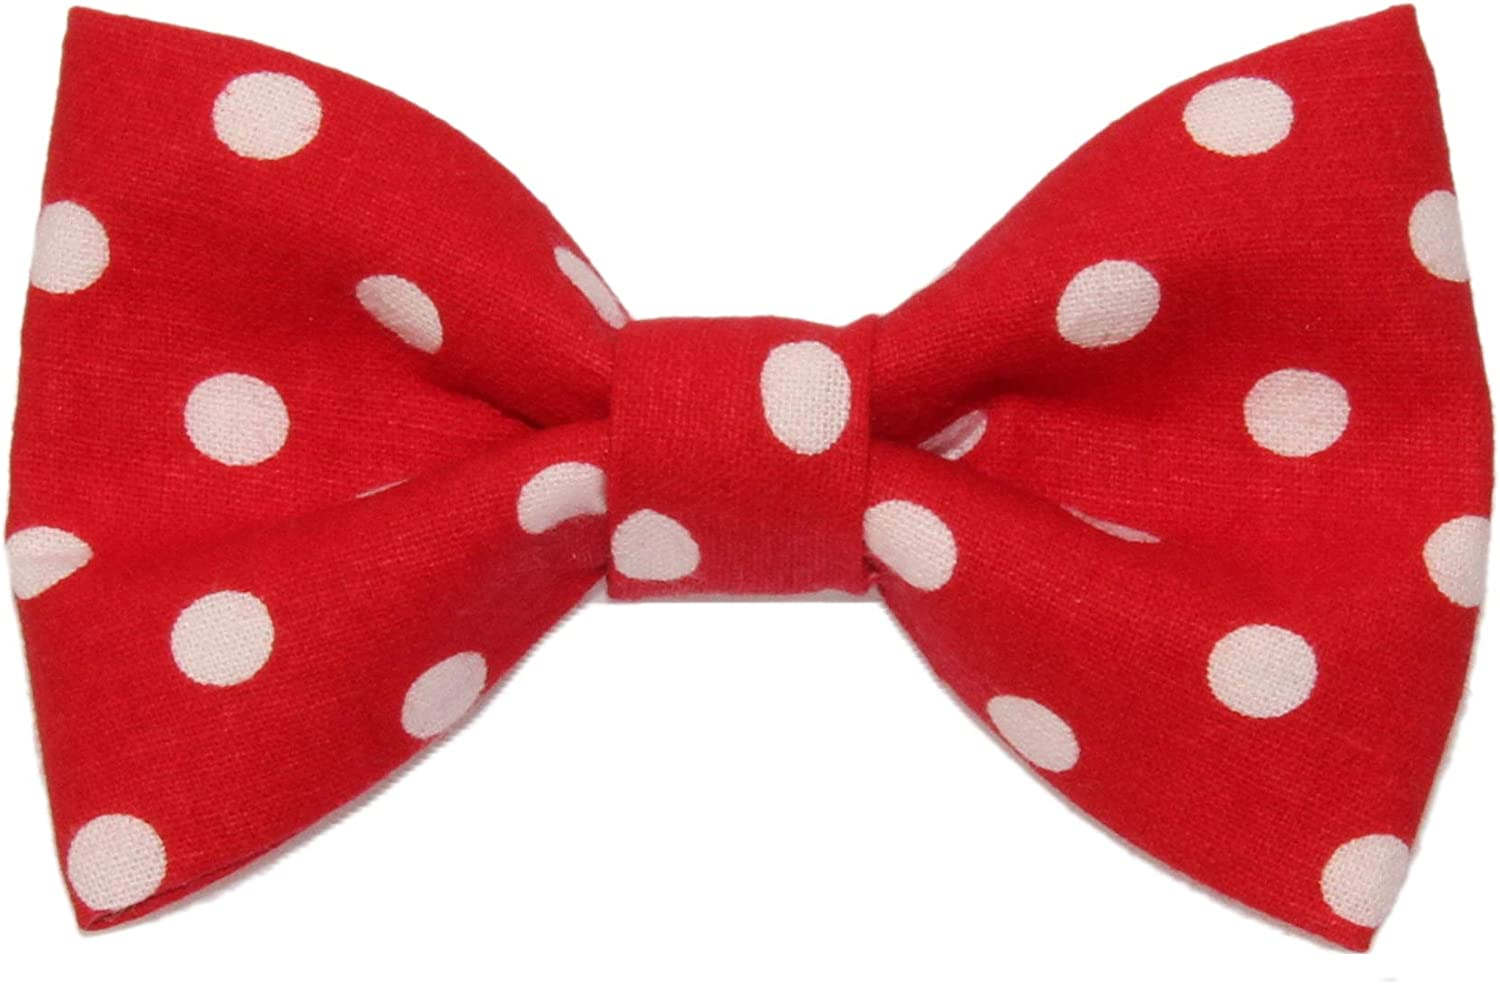 Boys Children's Red With White Polka Dots Clip On Cotton Bow Tie